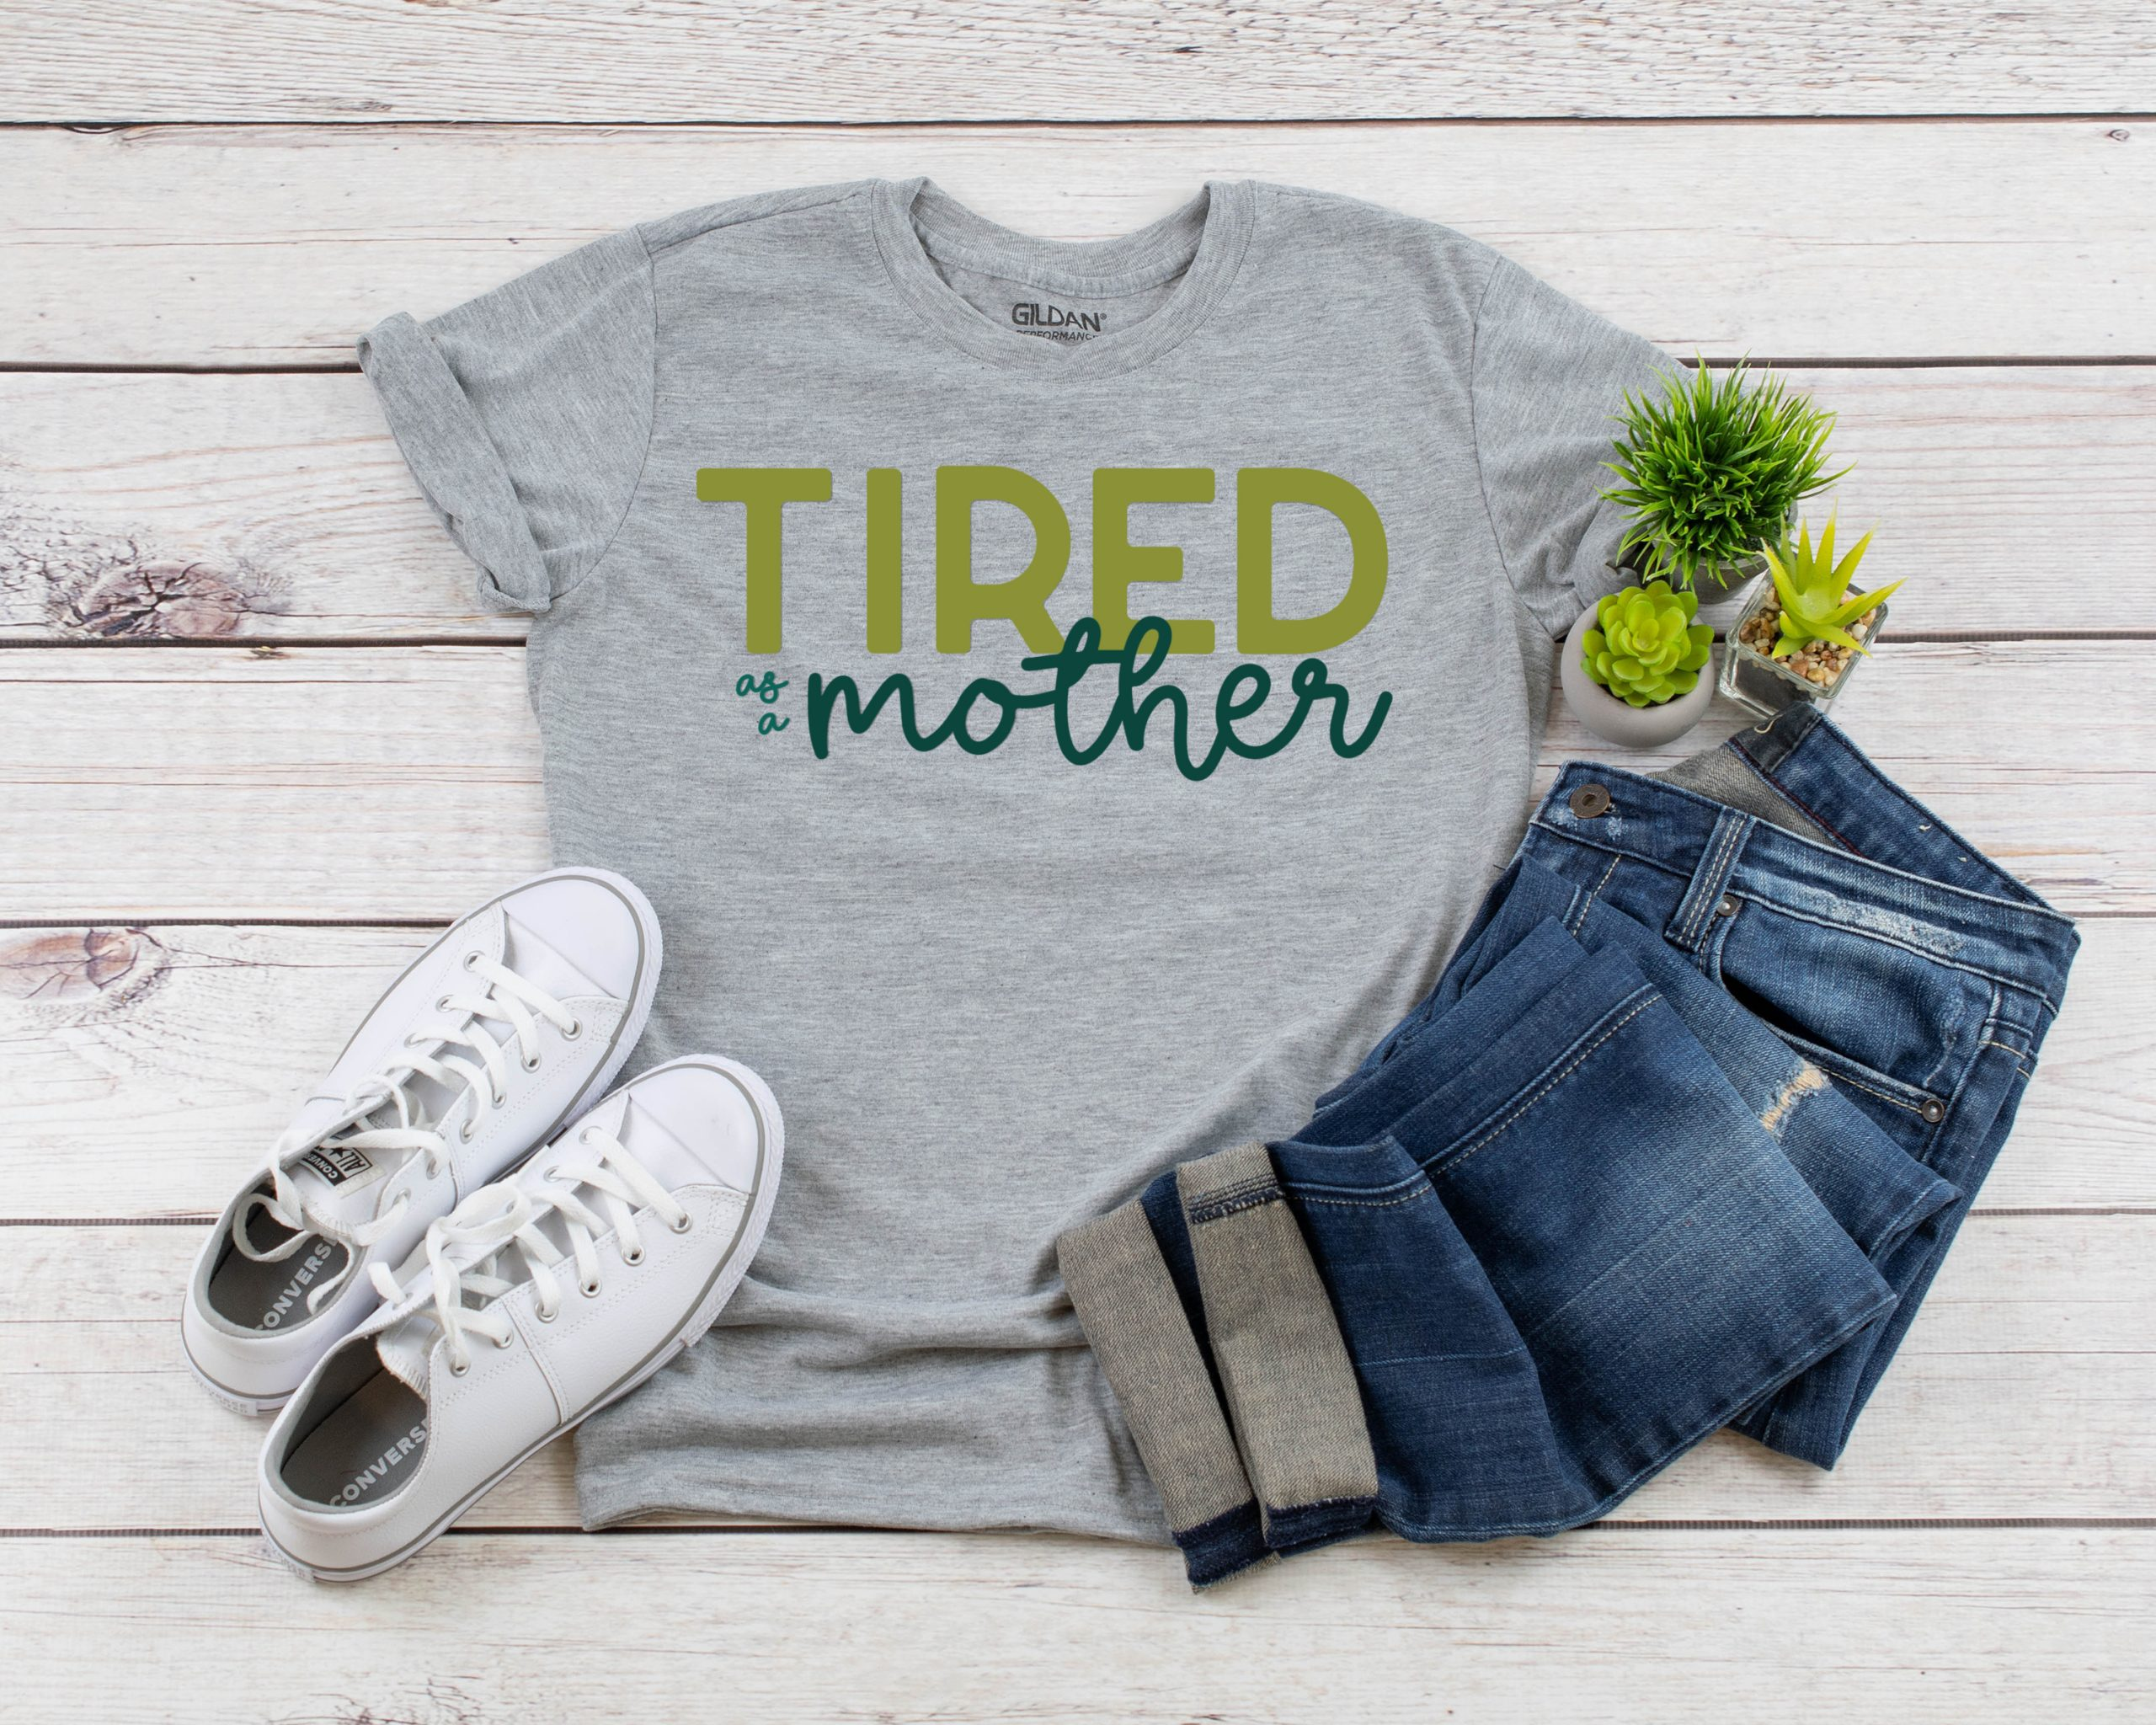 Free Tired as a Mother SVG on a t-shirt